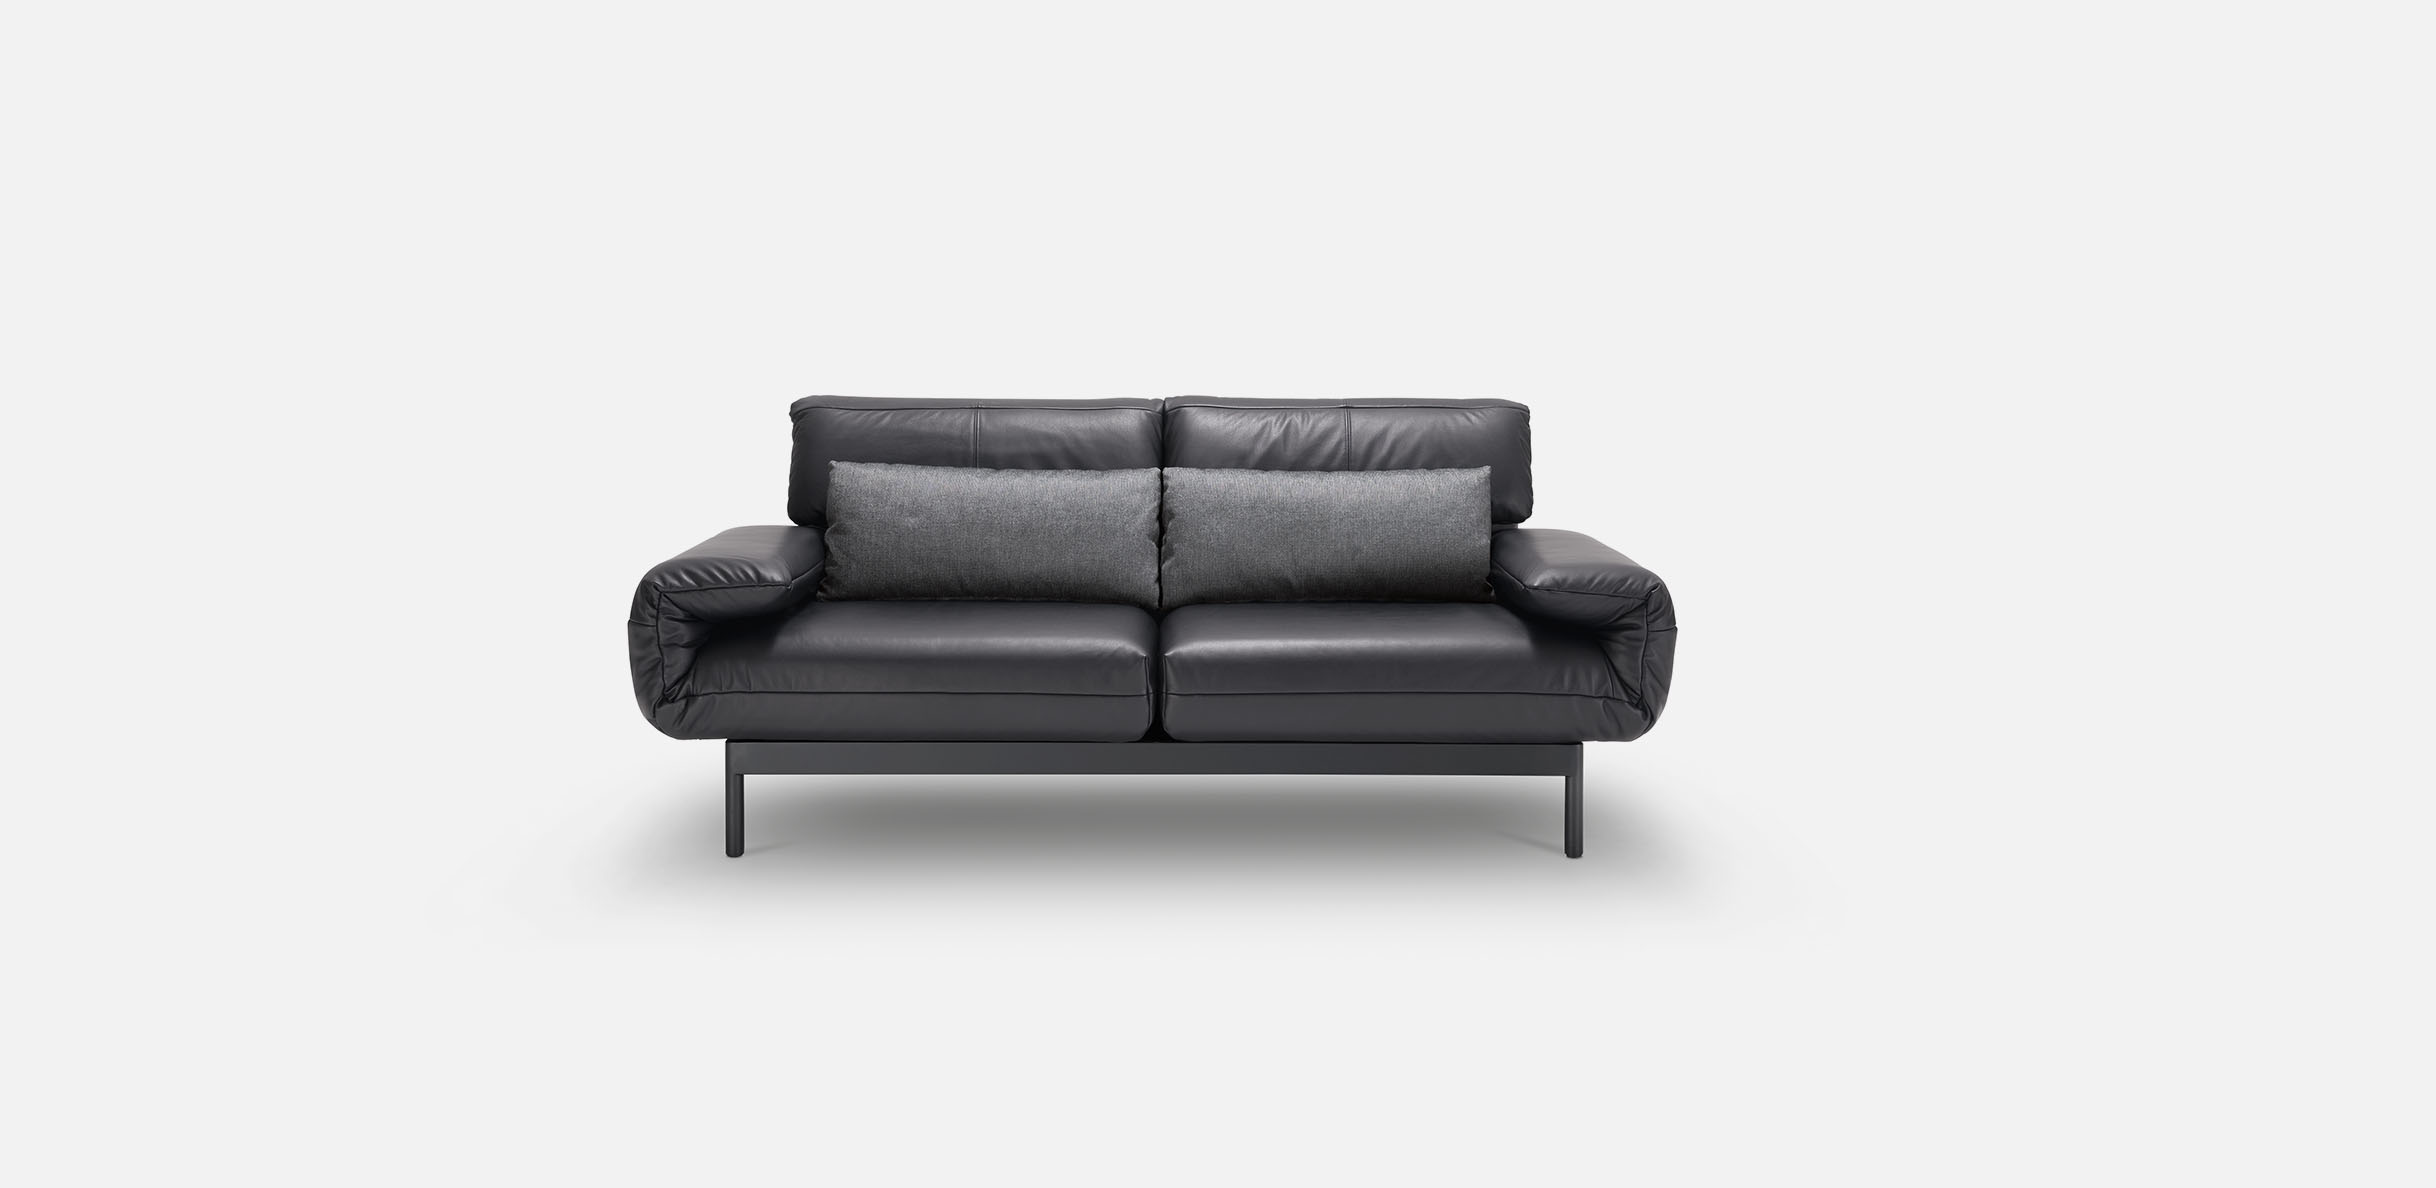 Moderne Couch Mit Sessel Plura